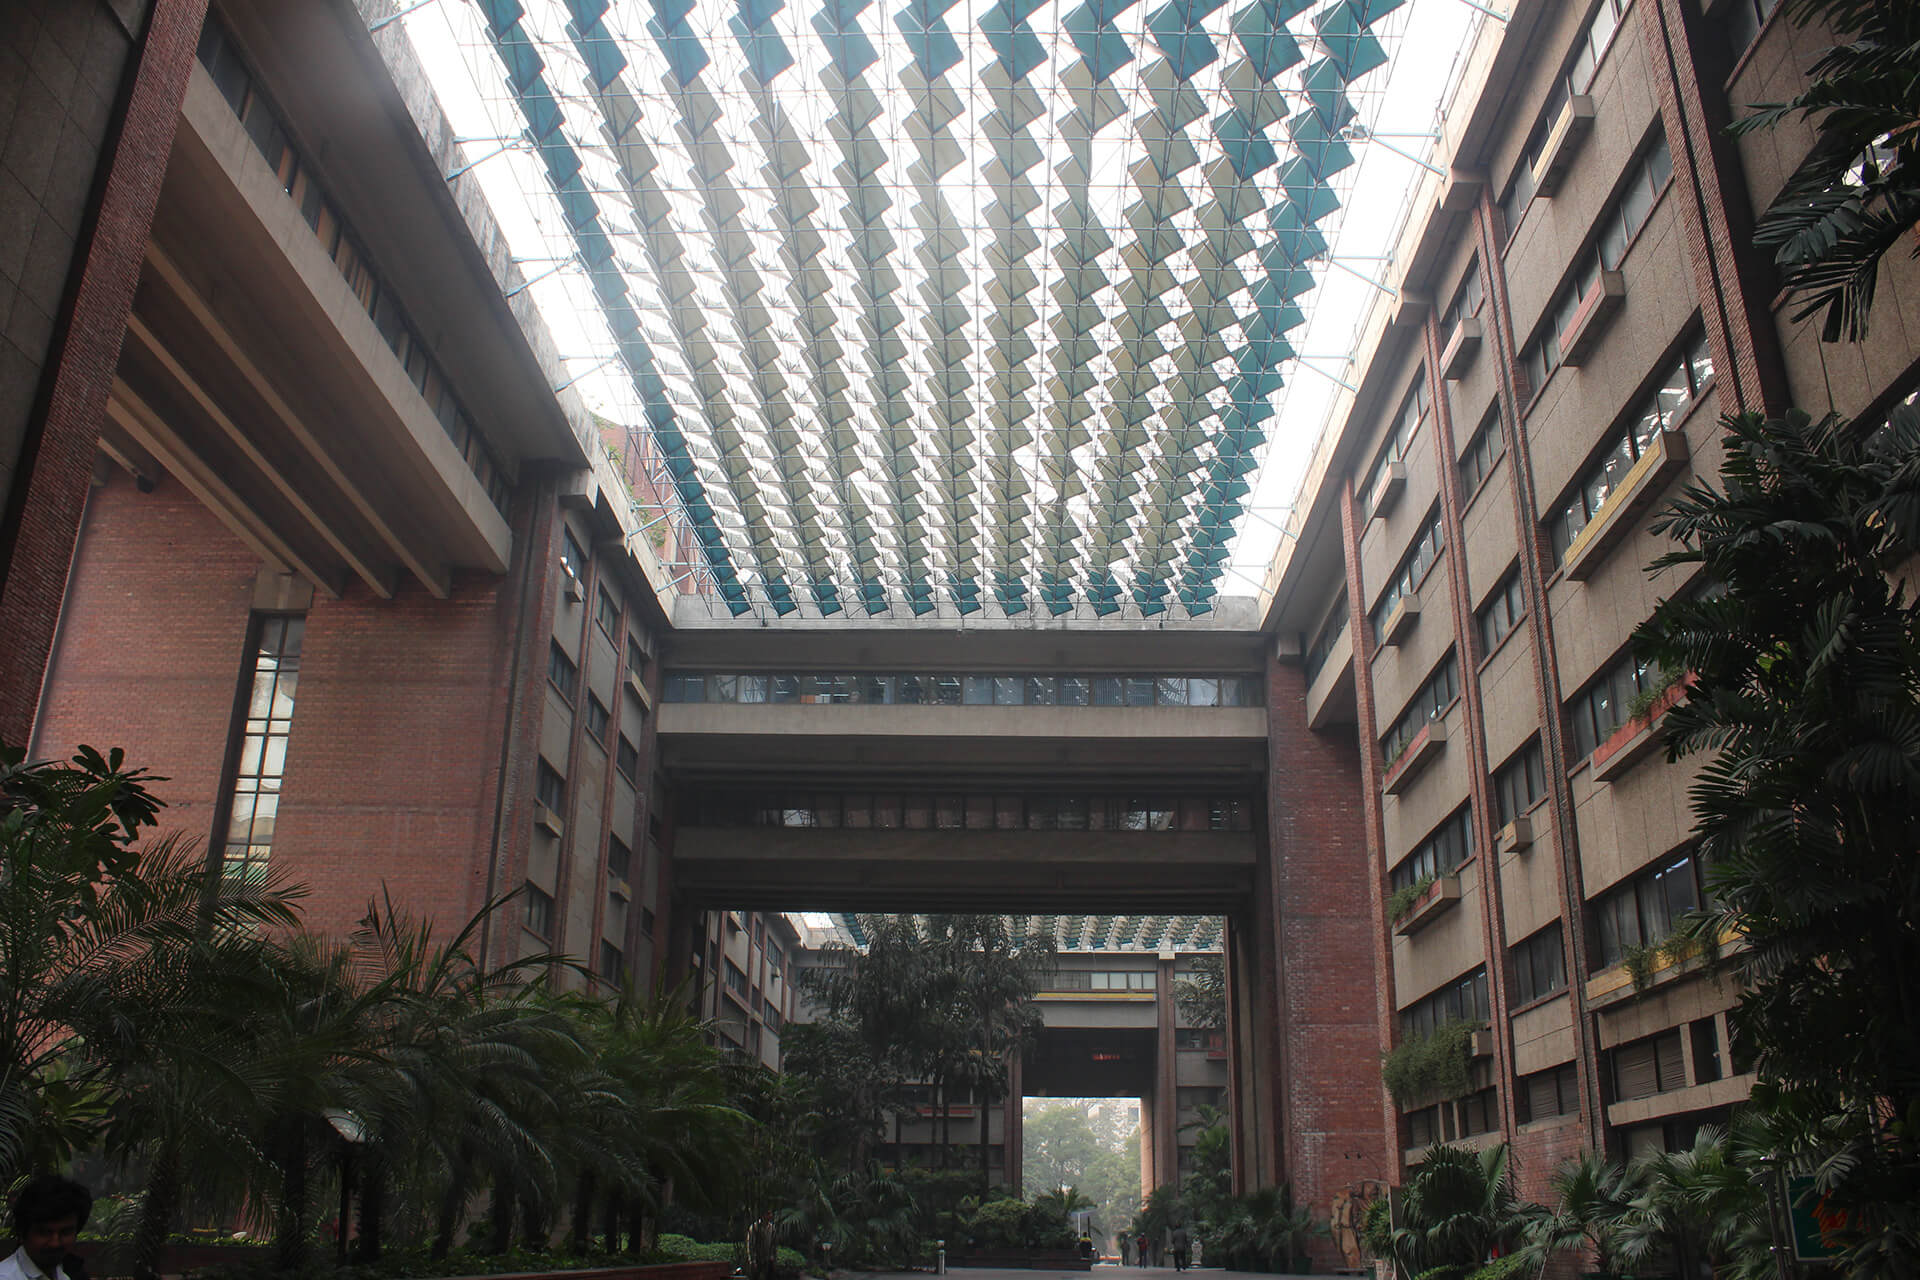 India Habitat Centre designed by Joseph Allen Stein for HUDCO in 1995 | Land as public amenity | Ranjit Sabikhi | STIRworld